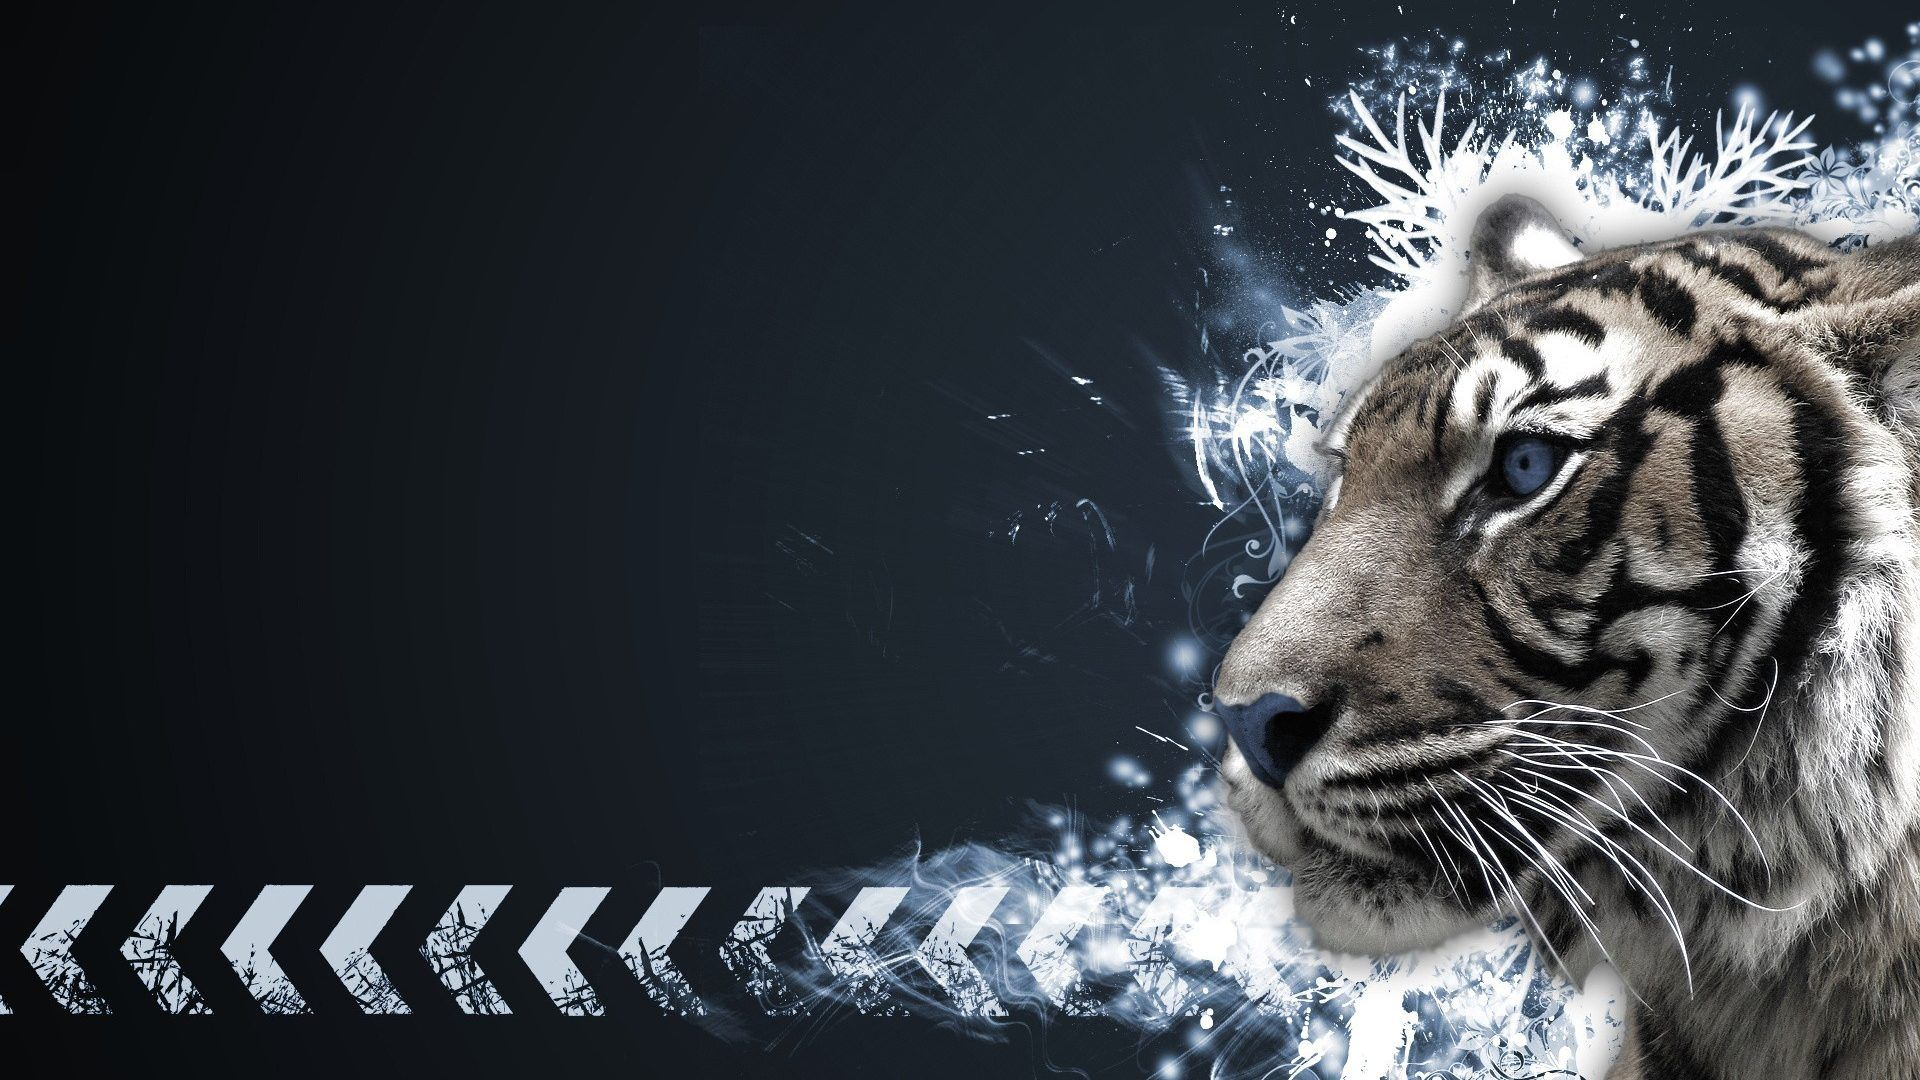 Tigers Tag wallpapers: Lions White Tigers Tiger Liger Cats ...